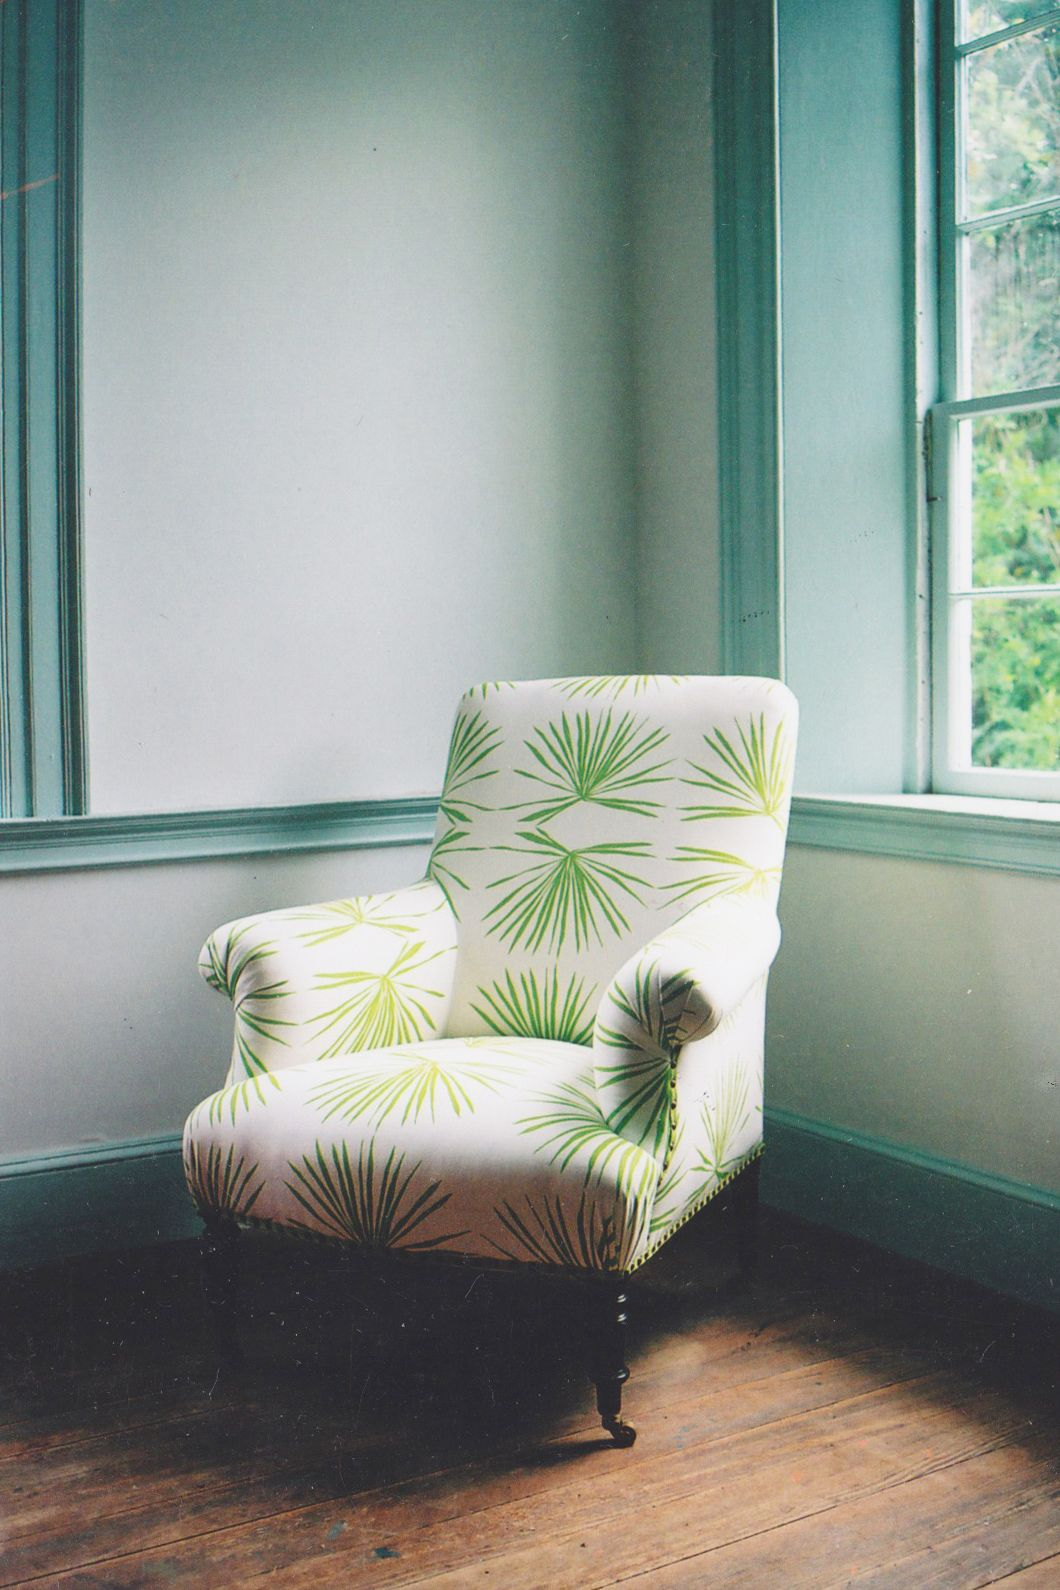 Viridian Palm Covered Chair. Photo by Rinne Allen